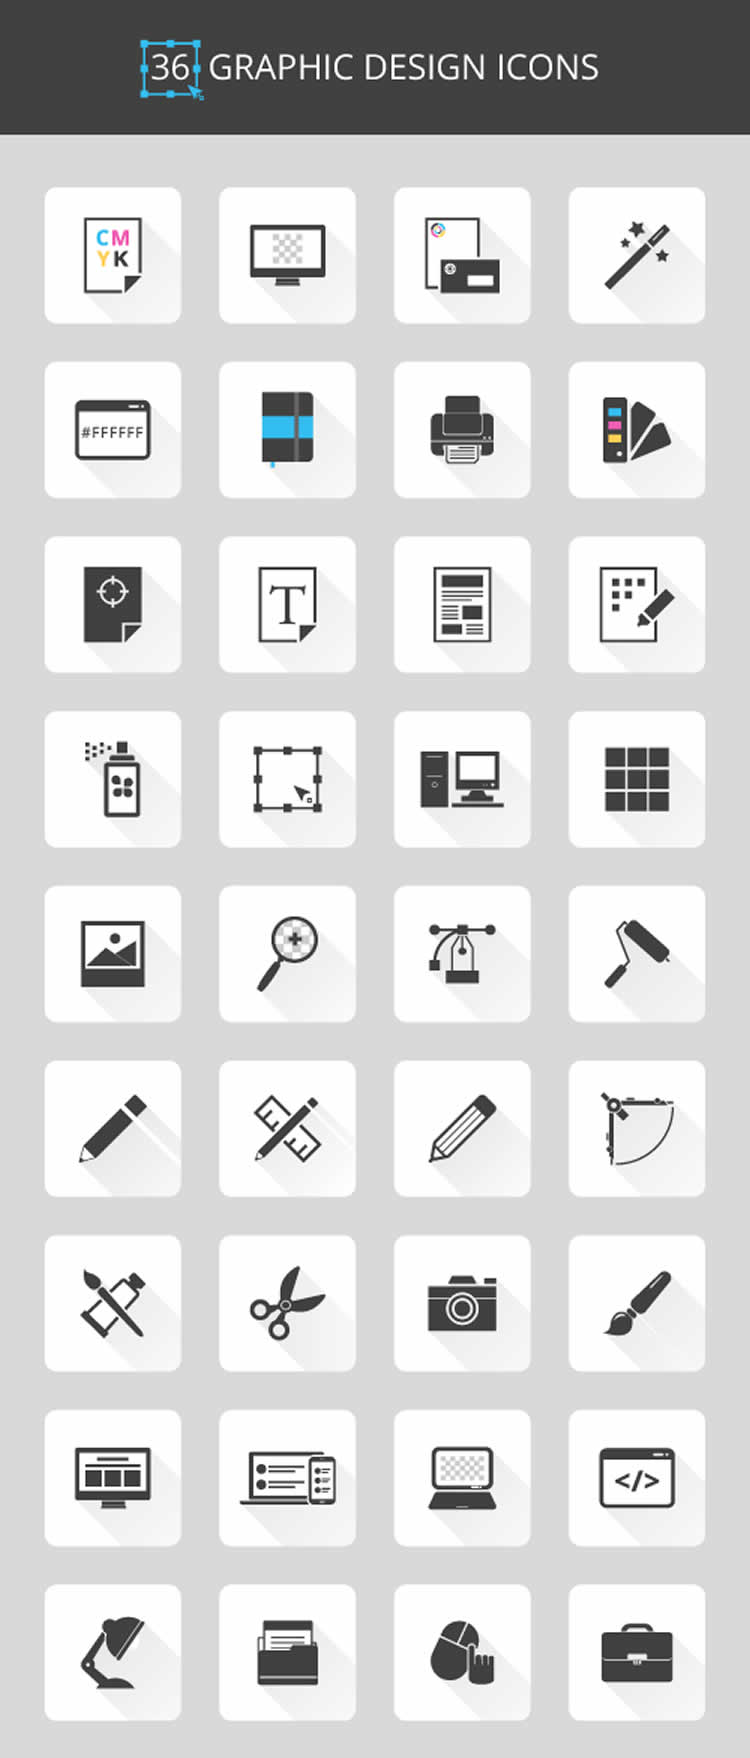 Grafik-Design-Icon-Set